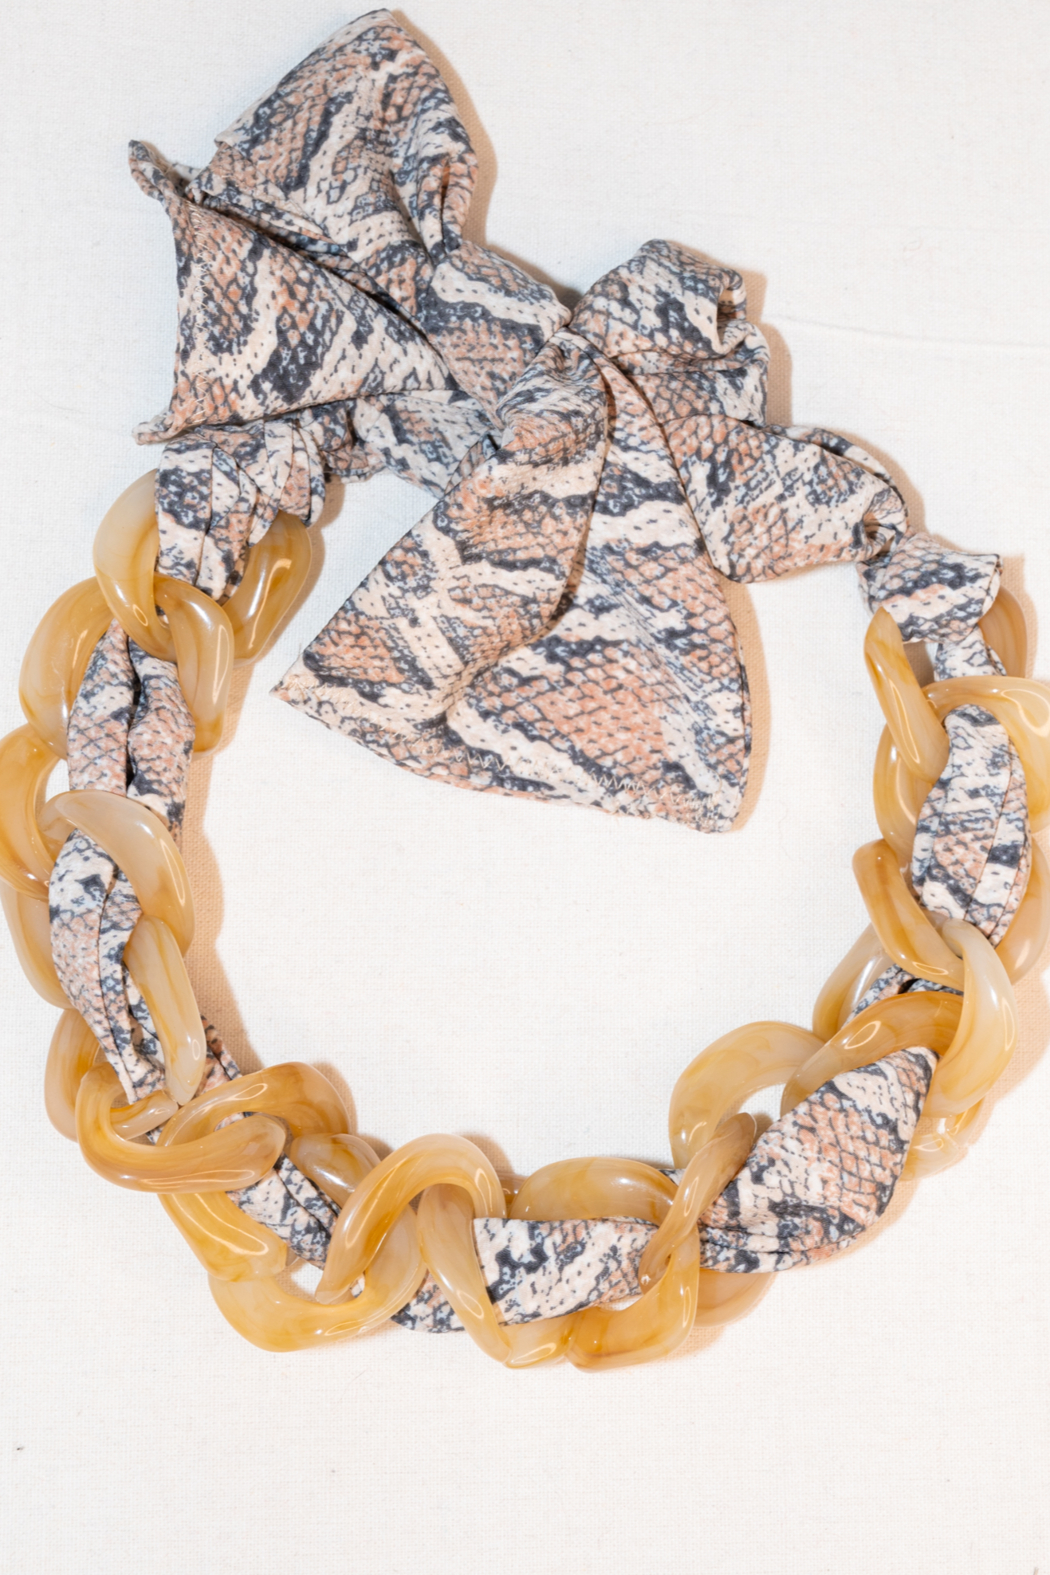 Handmade by CA artist Scarf with Chain - Linked - Necklace - Back Cropped Image